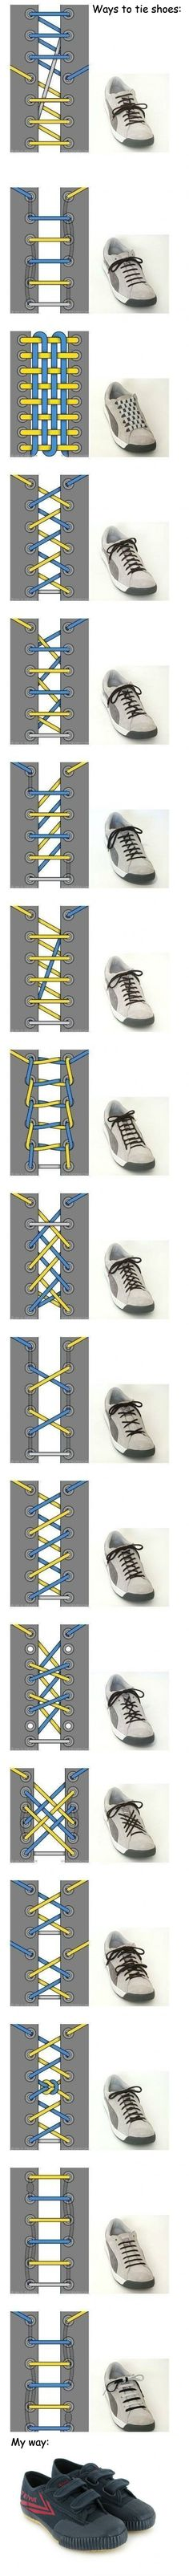 Several ways to tie shoes. i like the top ones.... but soo much effort.